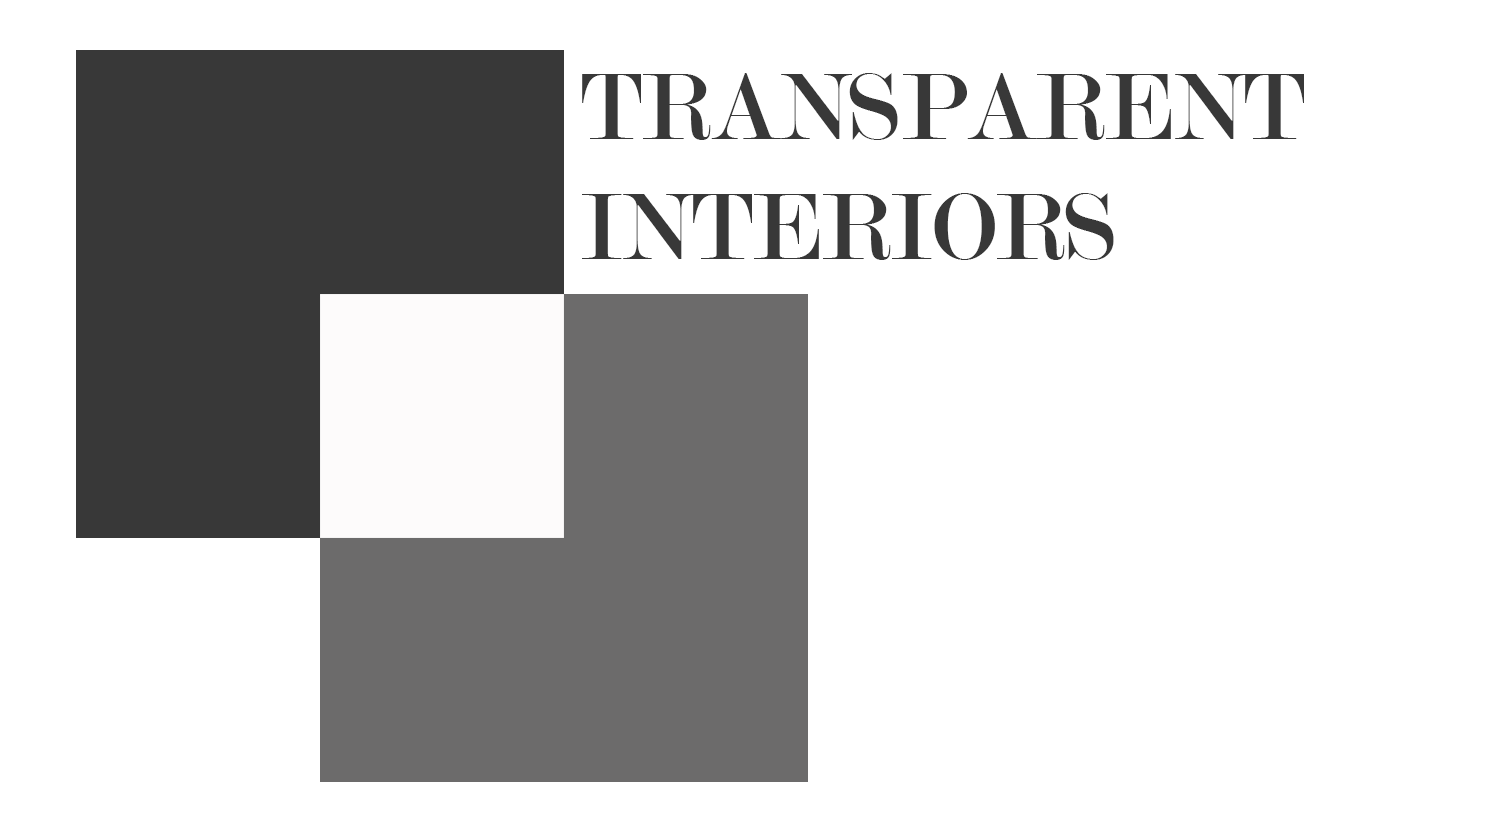 Transparent Interiors